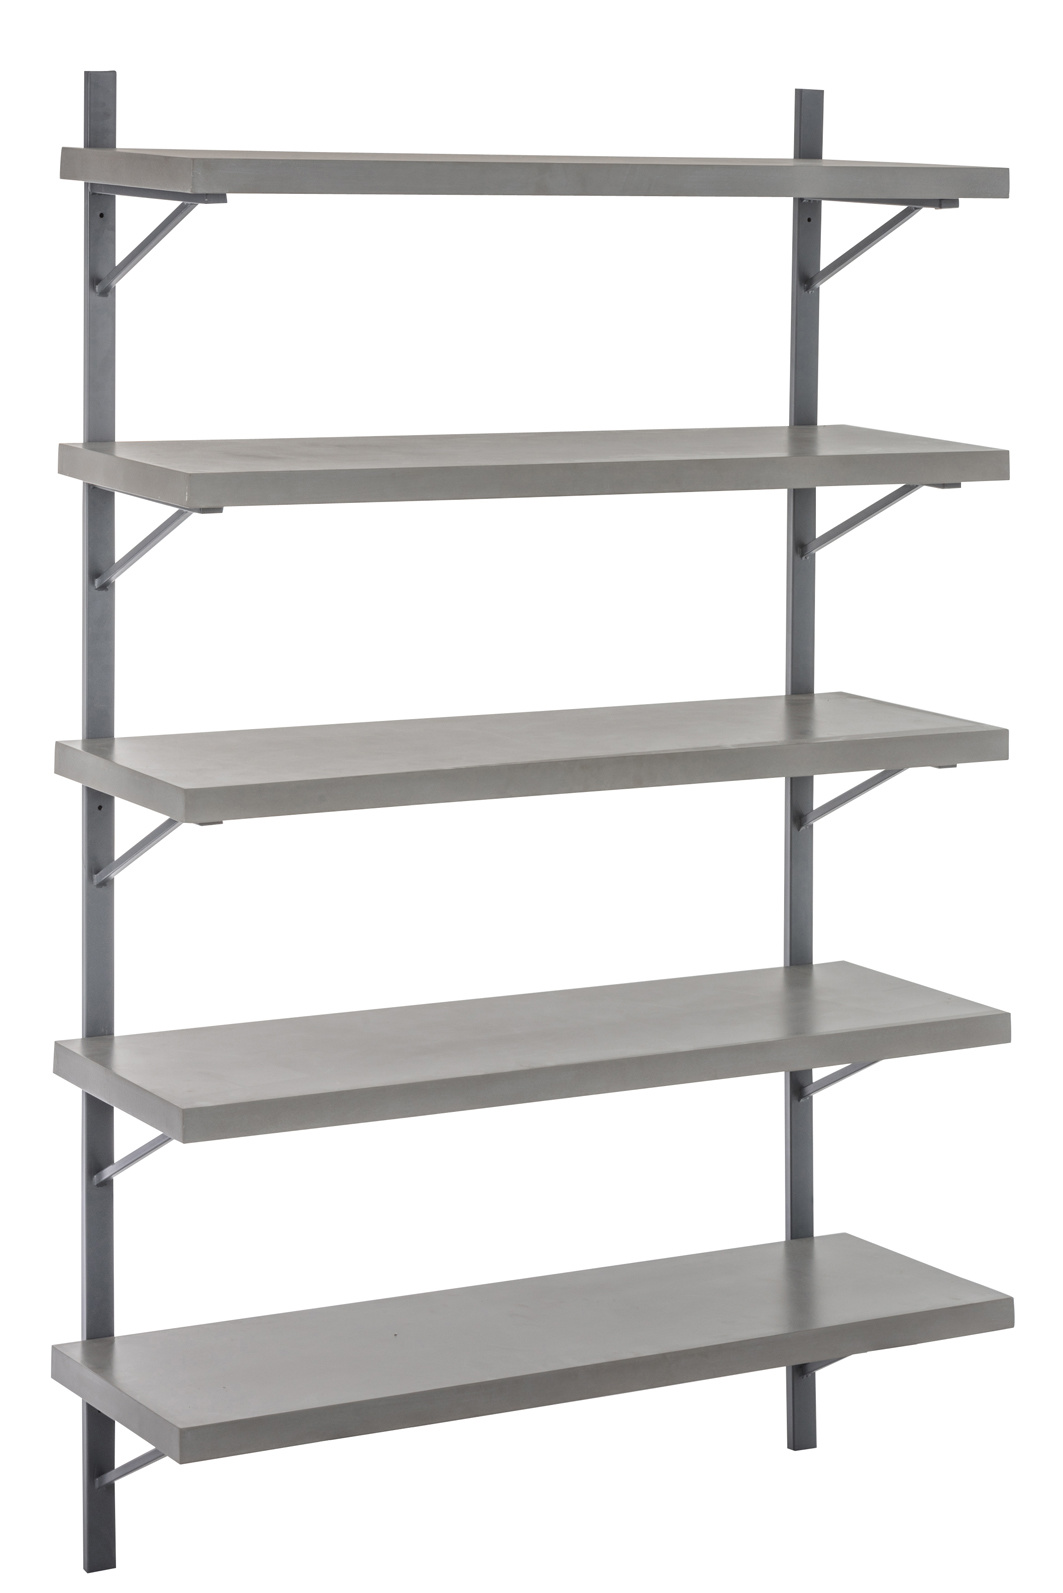 Duverger Industry Grey - Wandrek - 5 legplanken - grijs - hout - beton finish - metalen frame